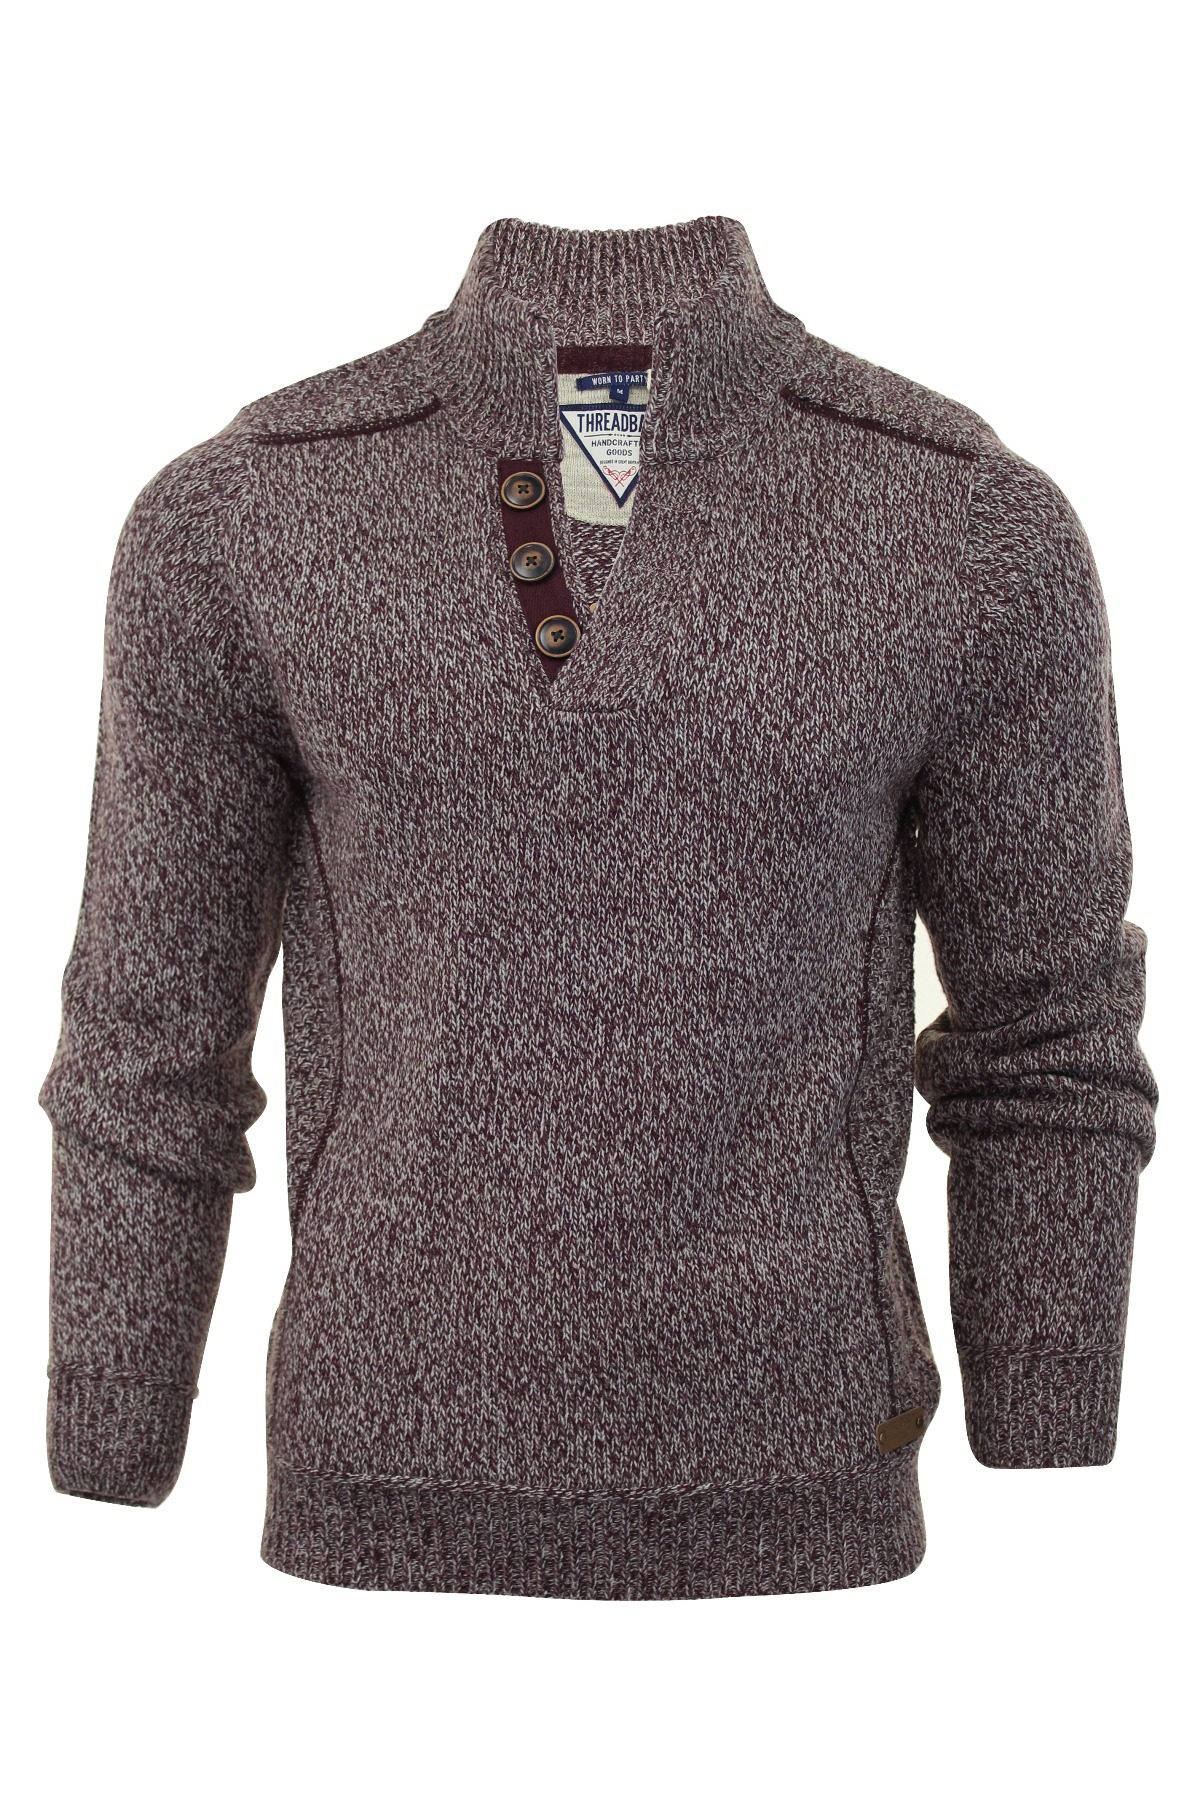 Mens Jumper Funnel Neck Threadbare 'Kinder' Wool Mix Cable Knit ...